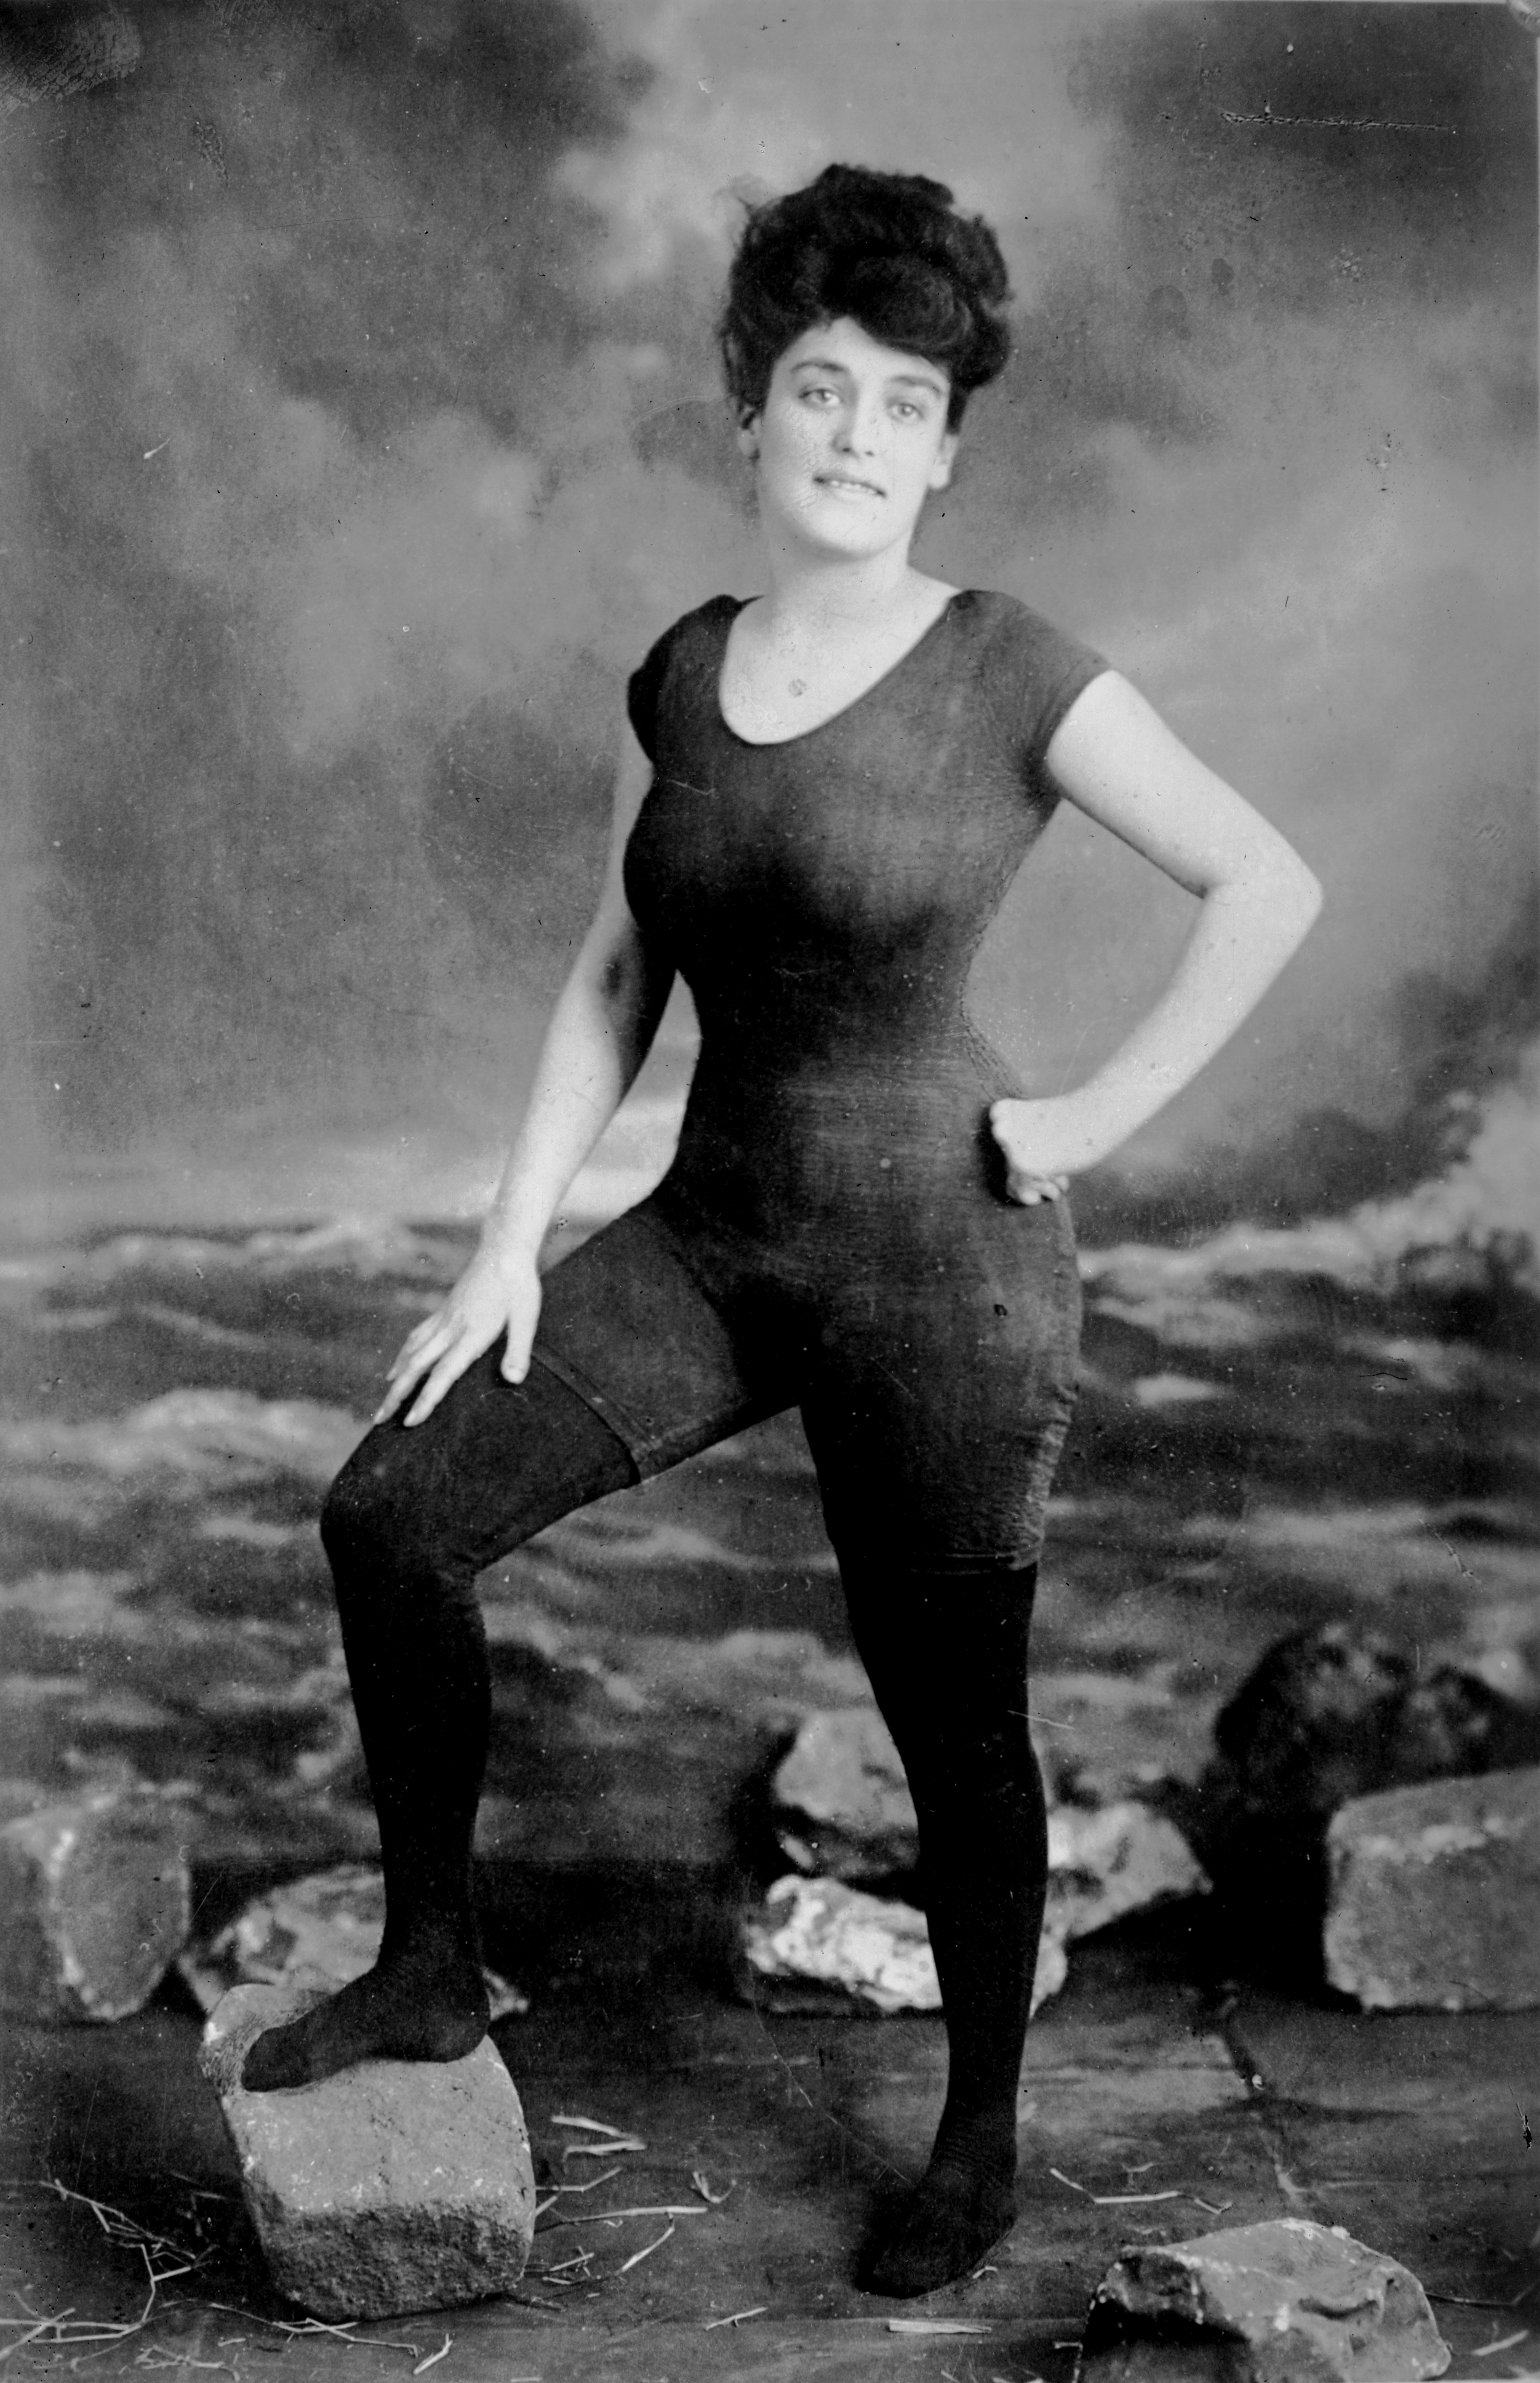 Annette Kellerman and her swimsuit